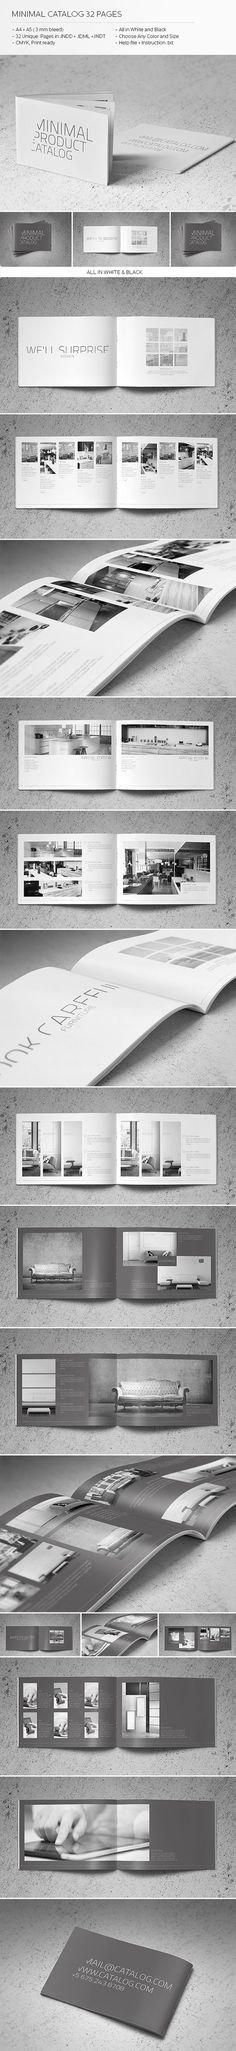 Minimal Catalog 32 Pages by Realstar , via Behance: